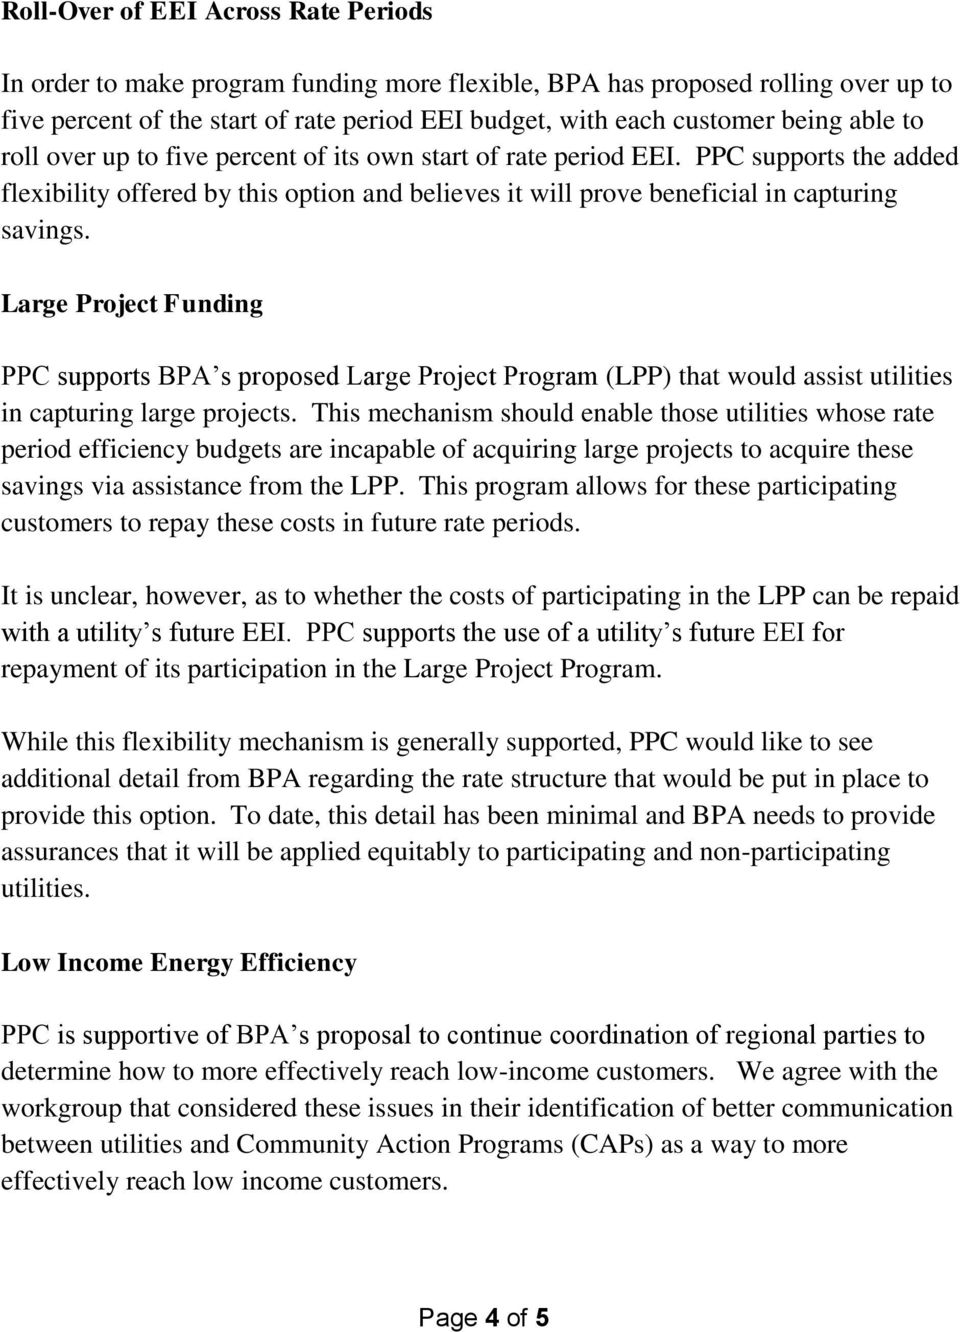 Large Project Funding PPC supports BPA s proposed Large Project Program (LPP) that would assist utilities in capturing large projects.